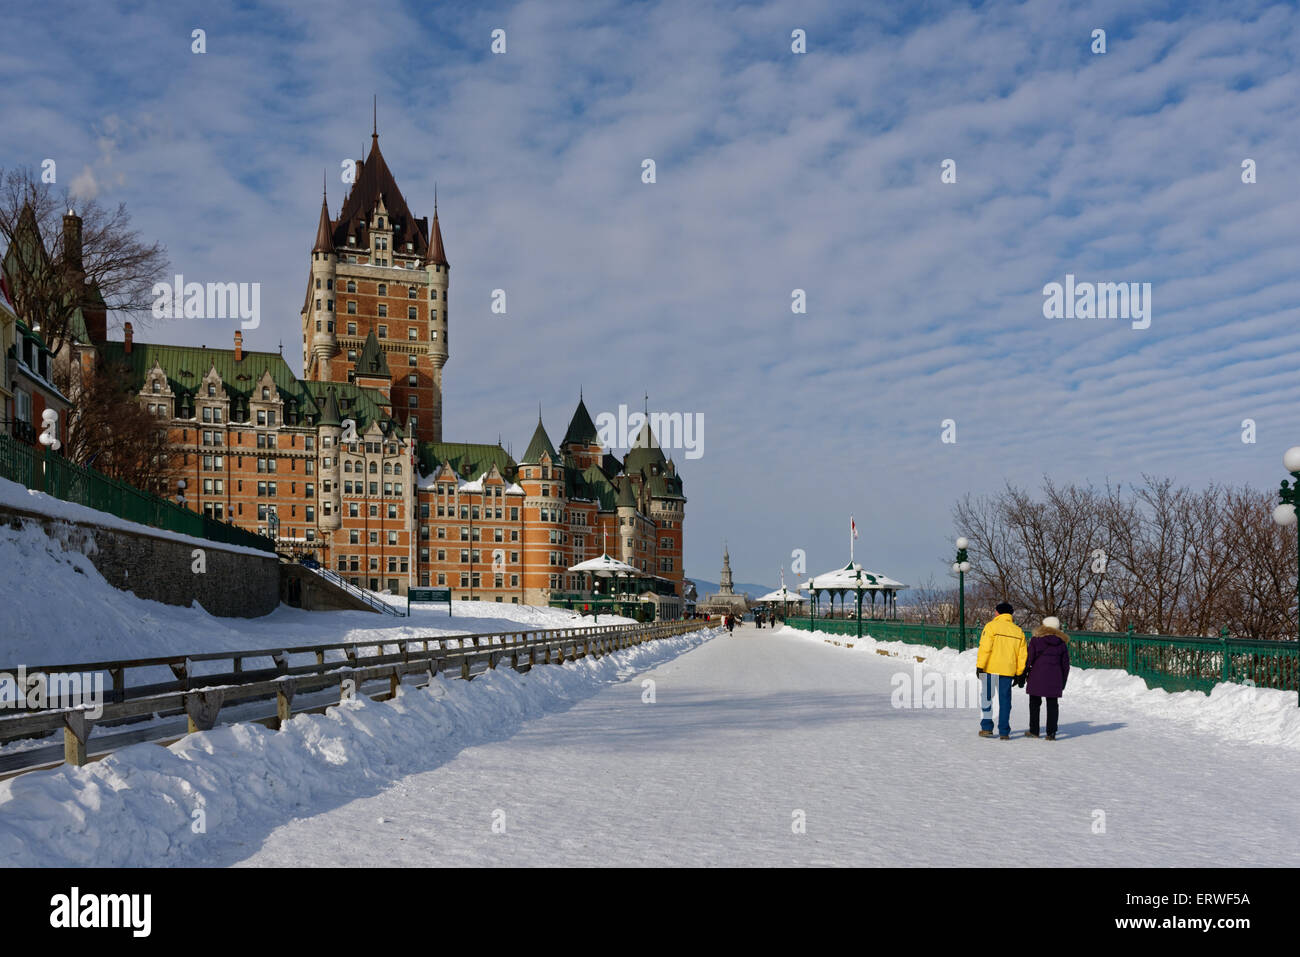 Terrasse Dufferin Terrasse Dufferin And The Chateau Frontenac In Winter